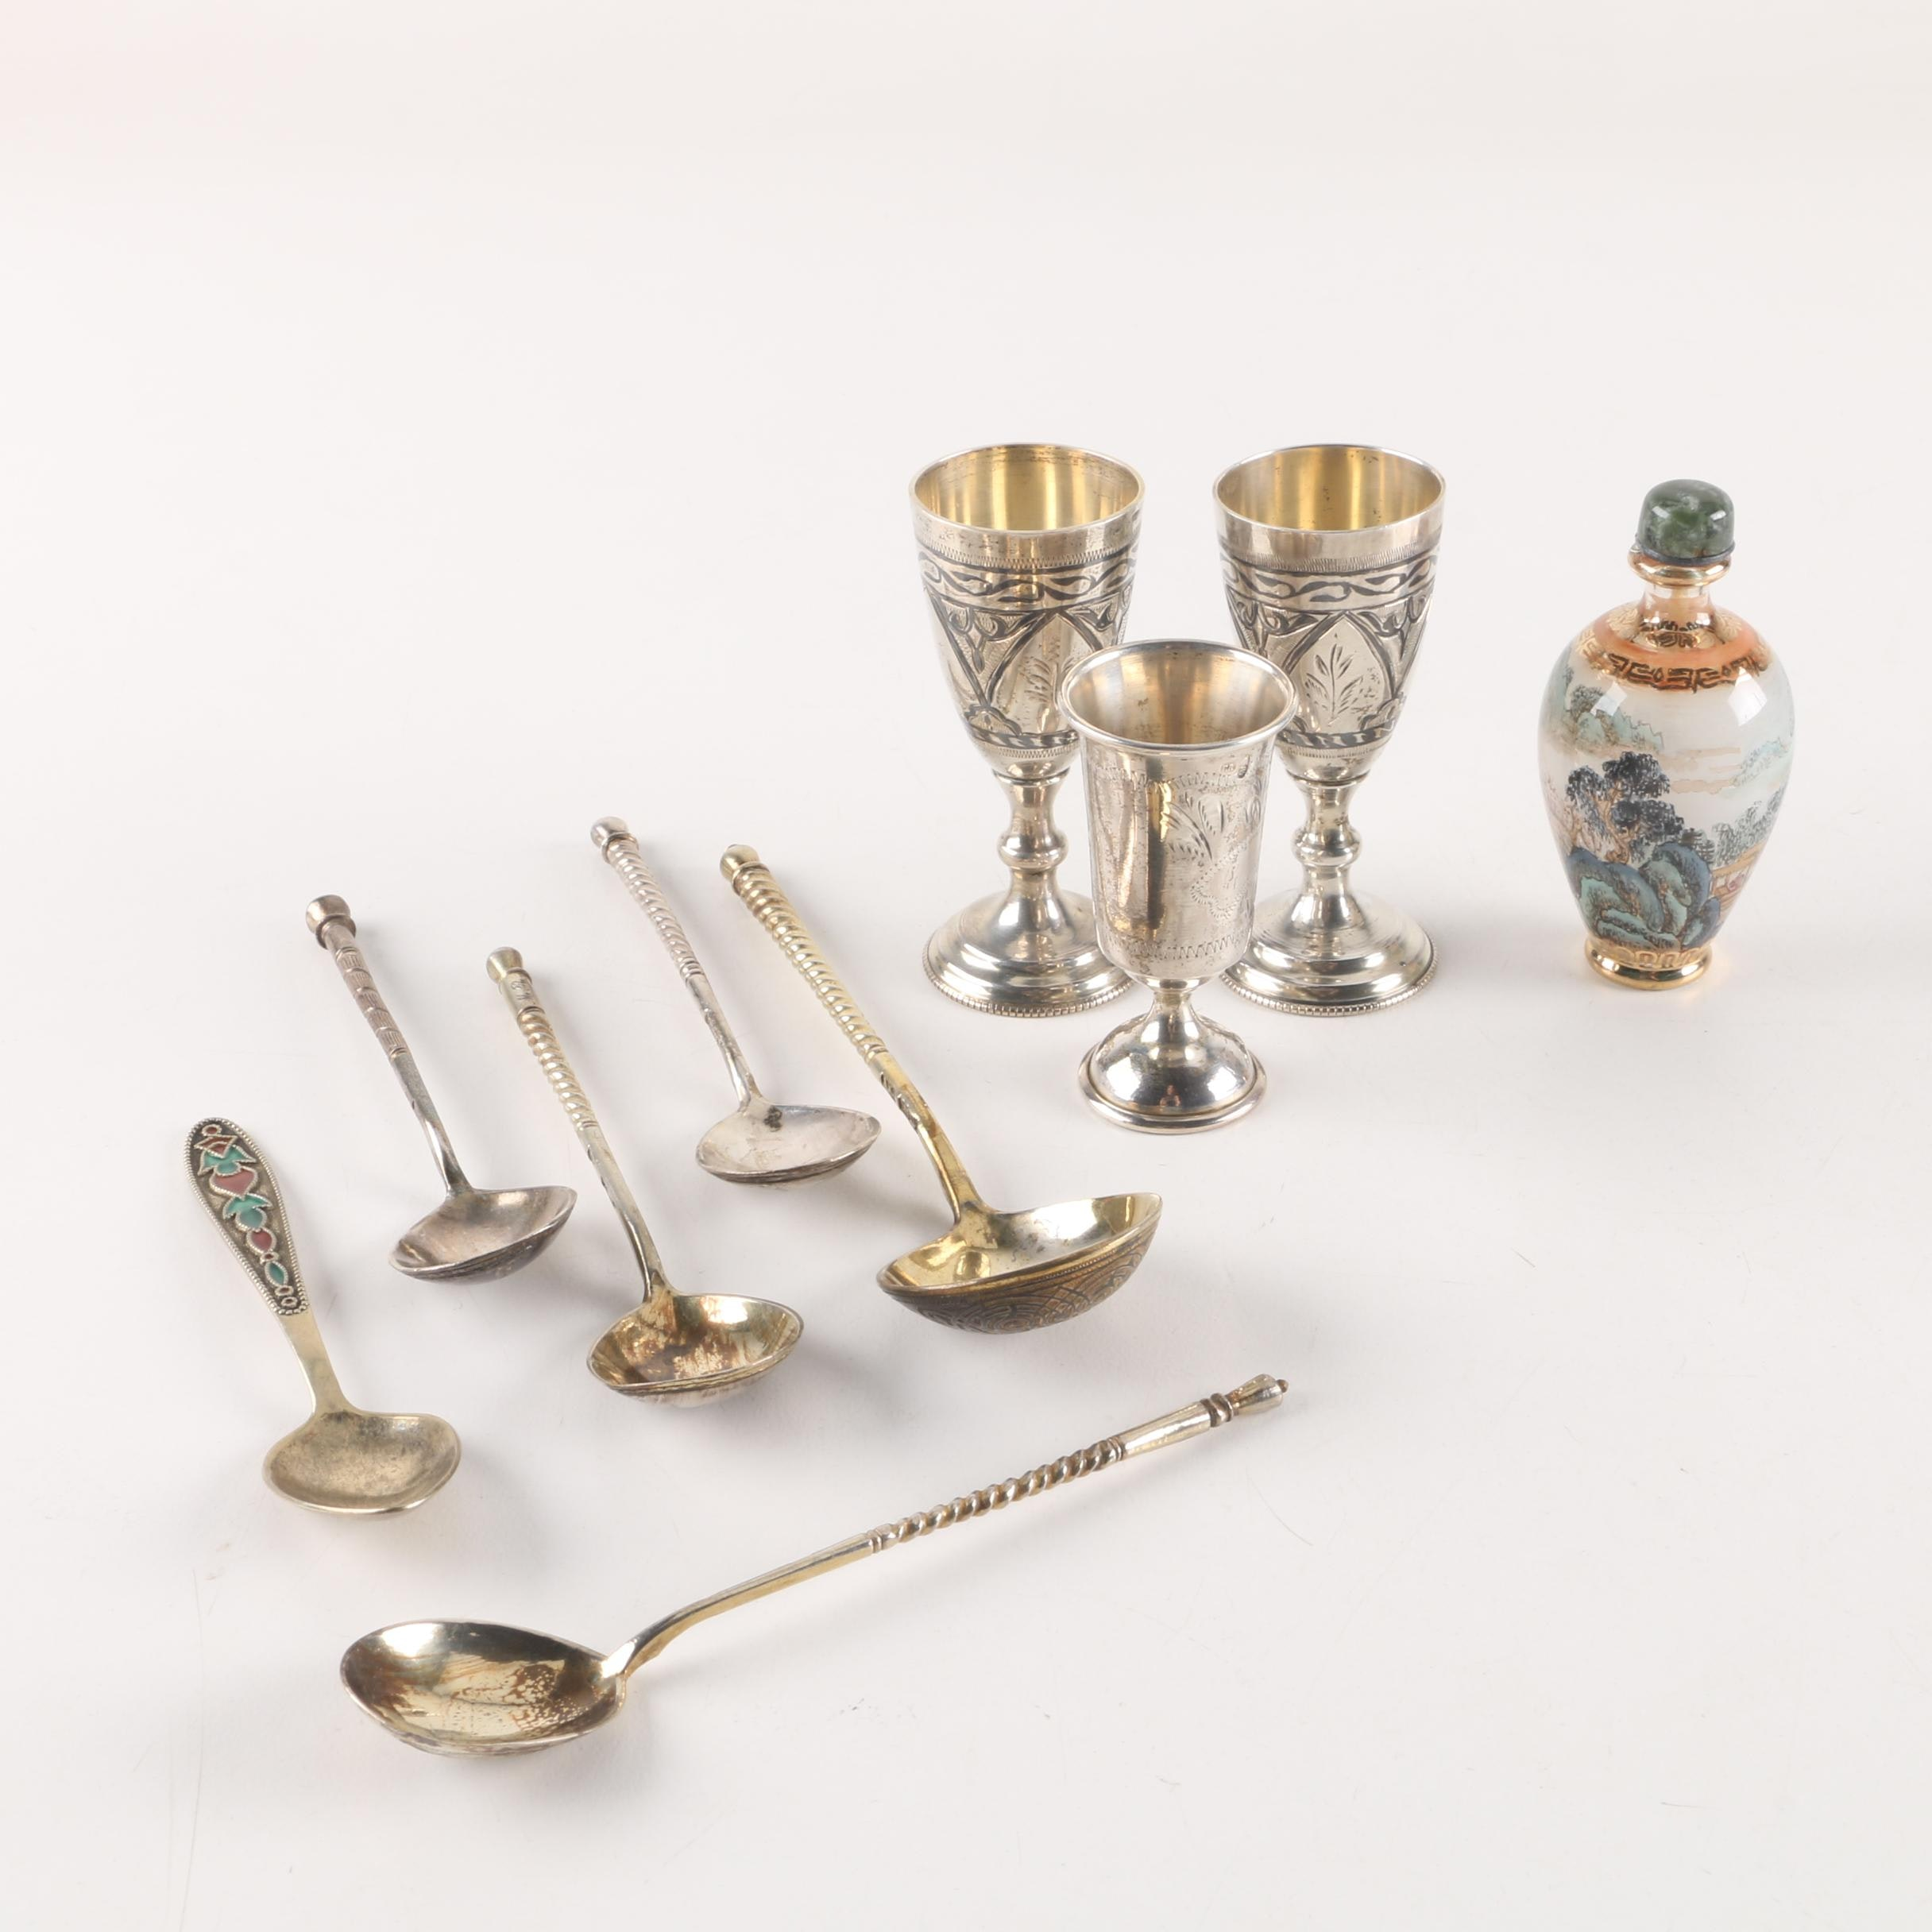 Silver Plate Spoon and Cup set with Painted Glass Bottle